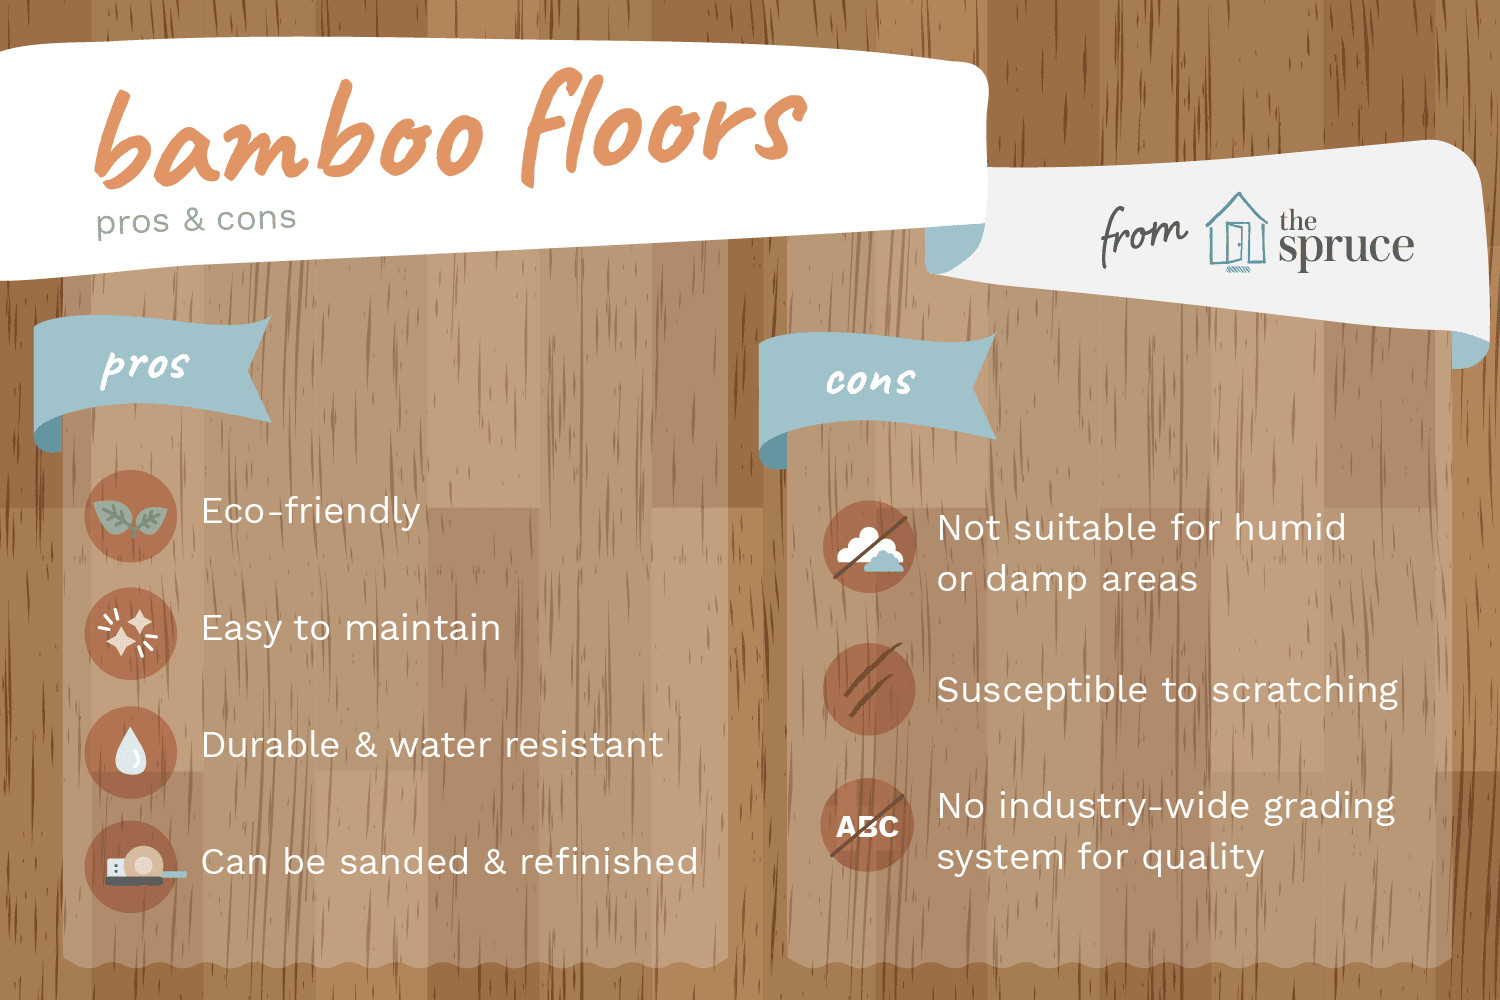 kingsbridge oak hardwood flooring of the advantages and disadvantages of bamboo flooring with regard to benefits and drawbacks of bamboo floors 1314694 v3 5b102fccff1b780036c0a4fa